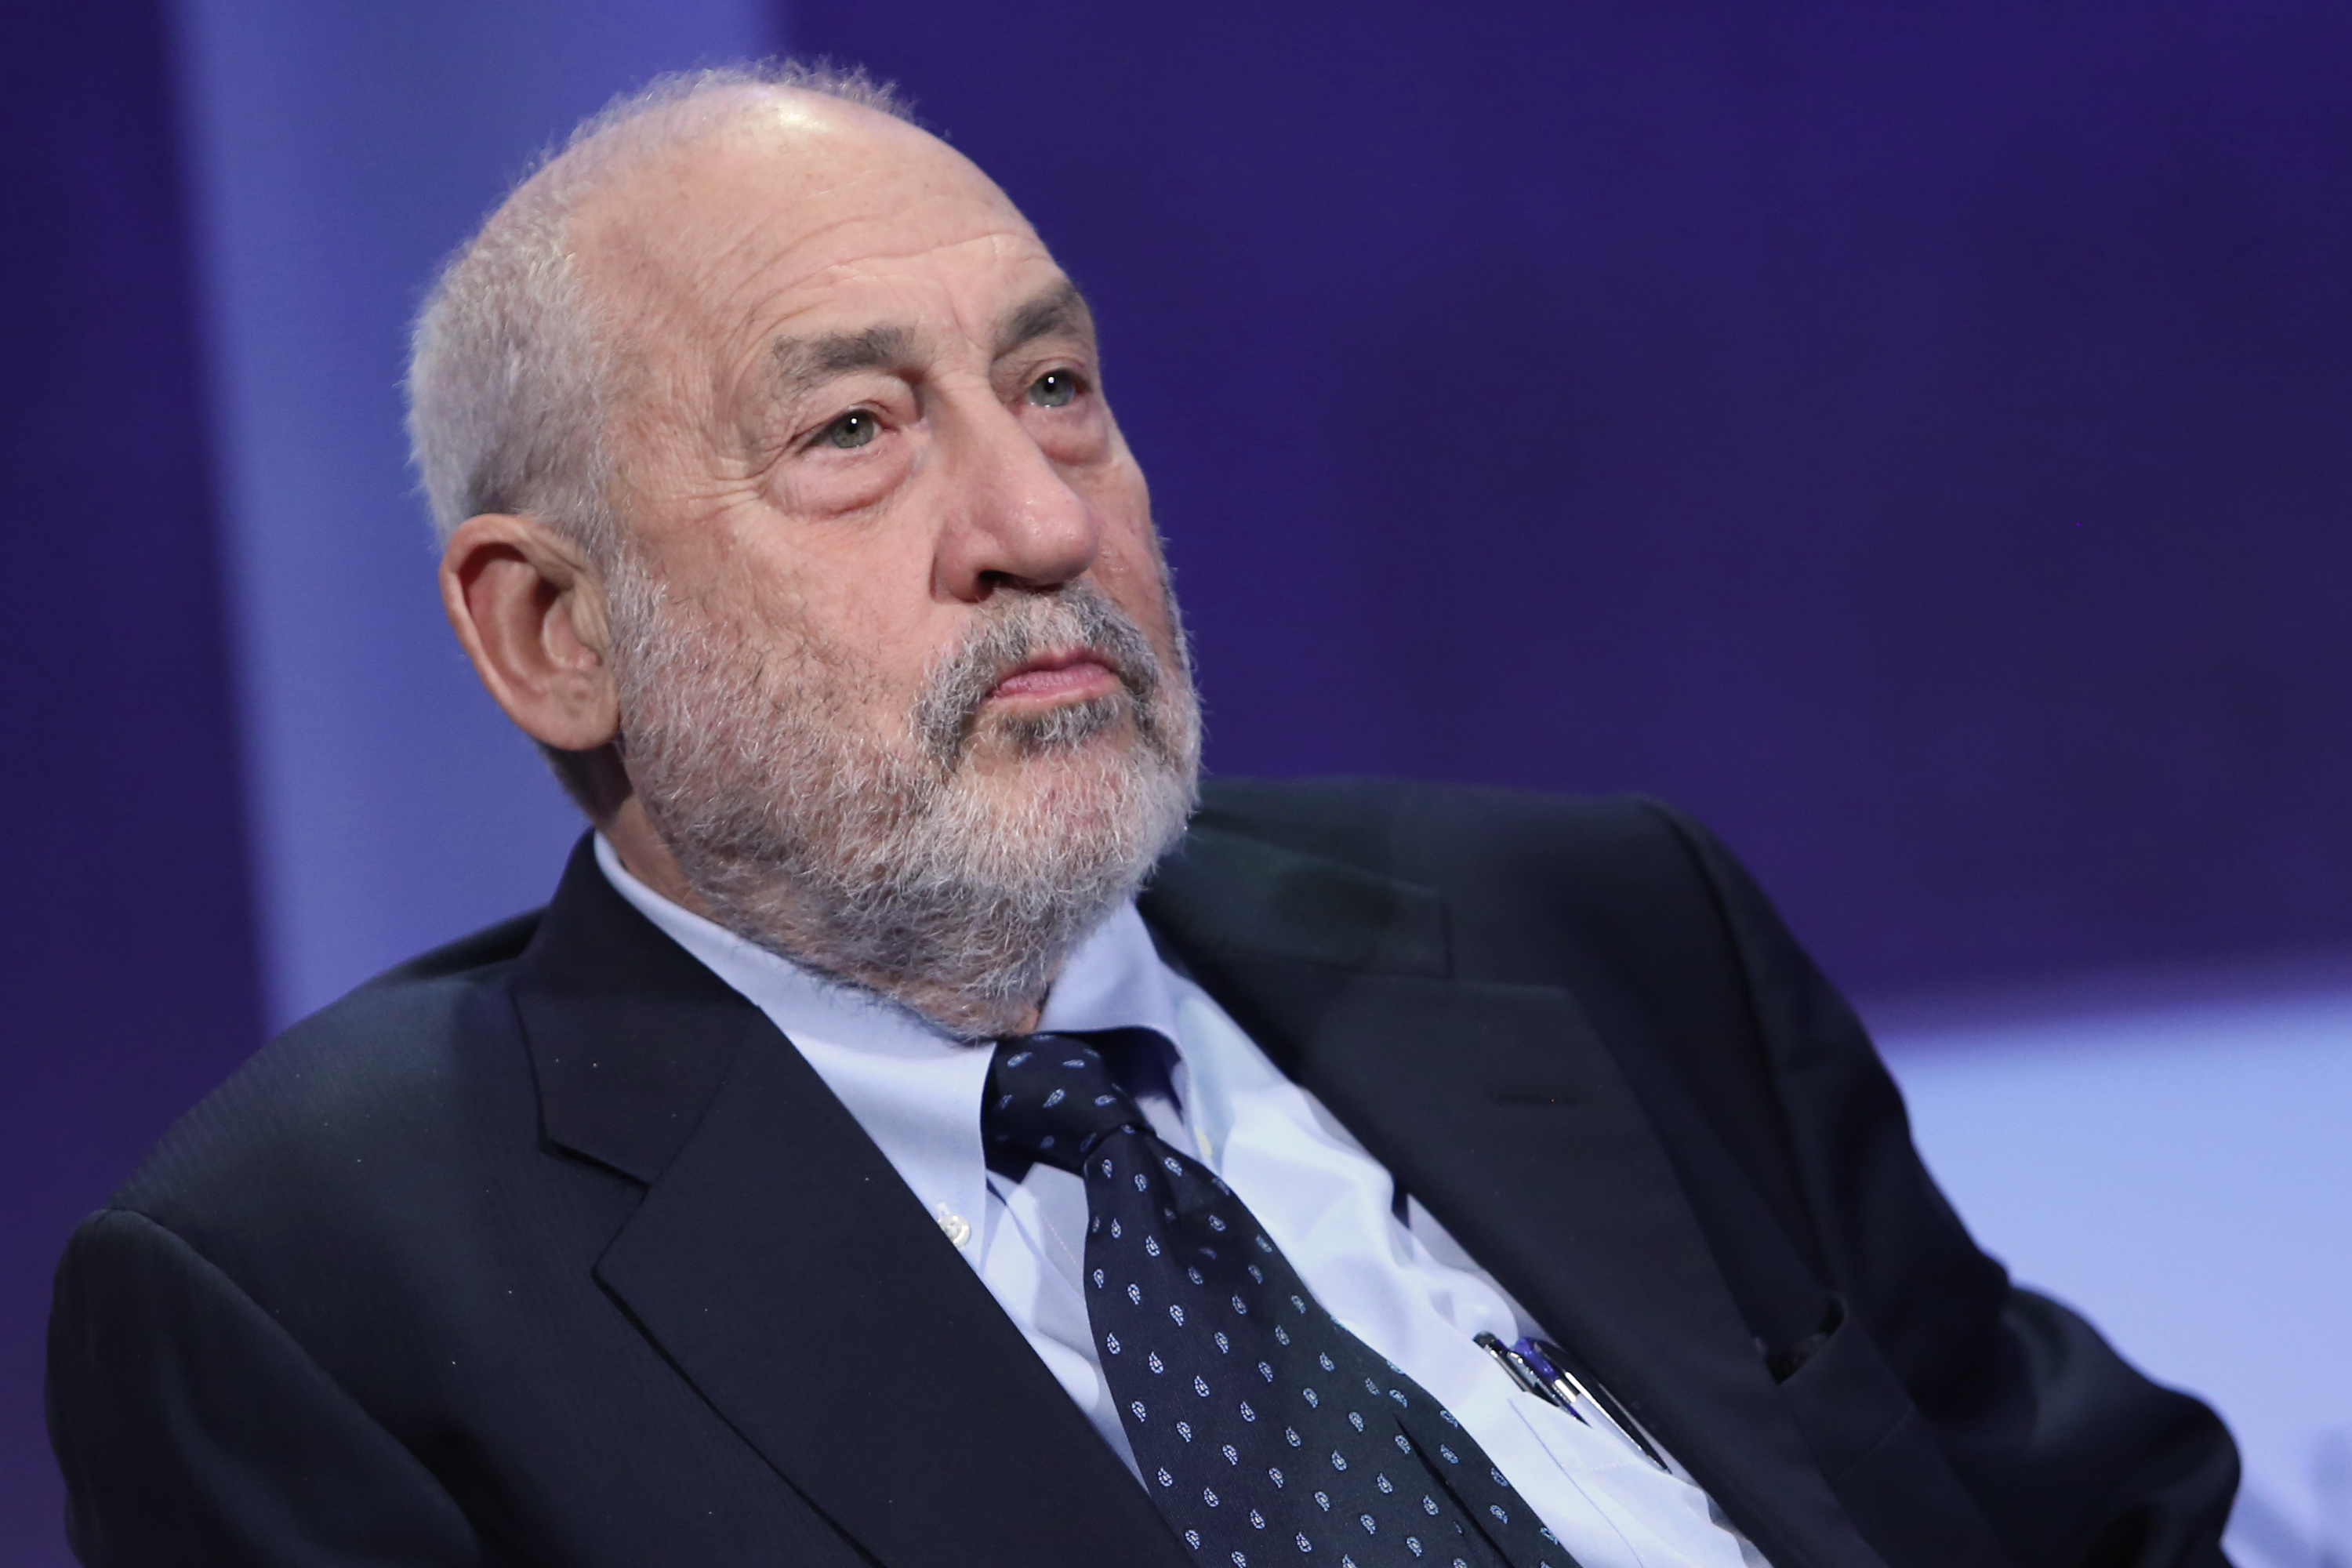 Joseph Stiglitz speaks at the Clinton Global Initiative Annual Meeting in New York City on Sept. 28, 2015.